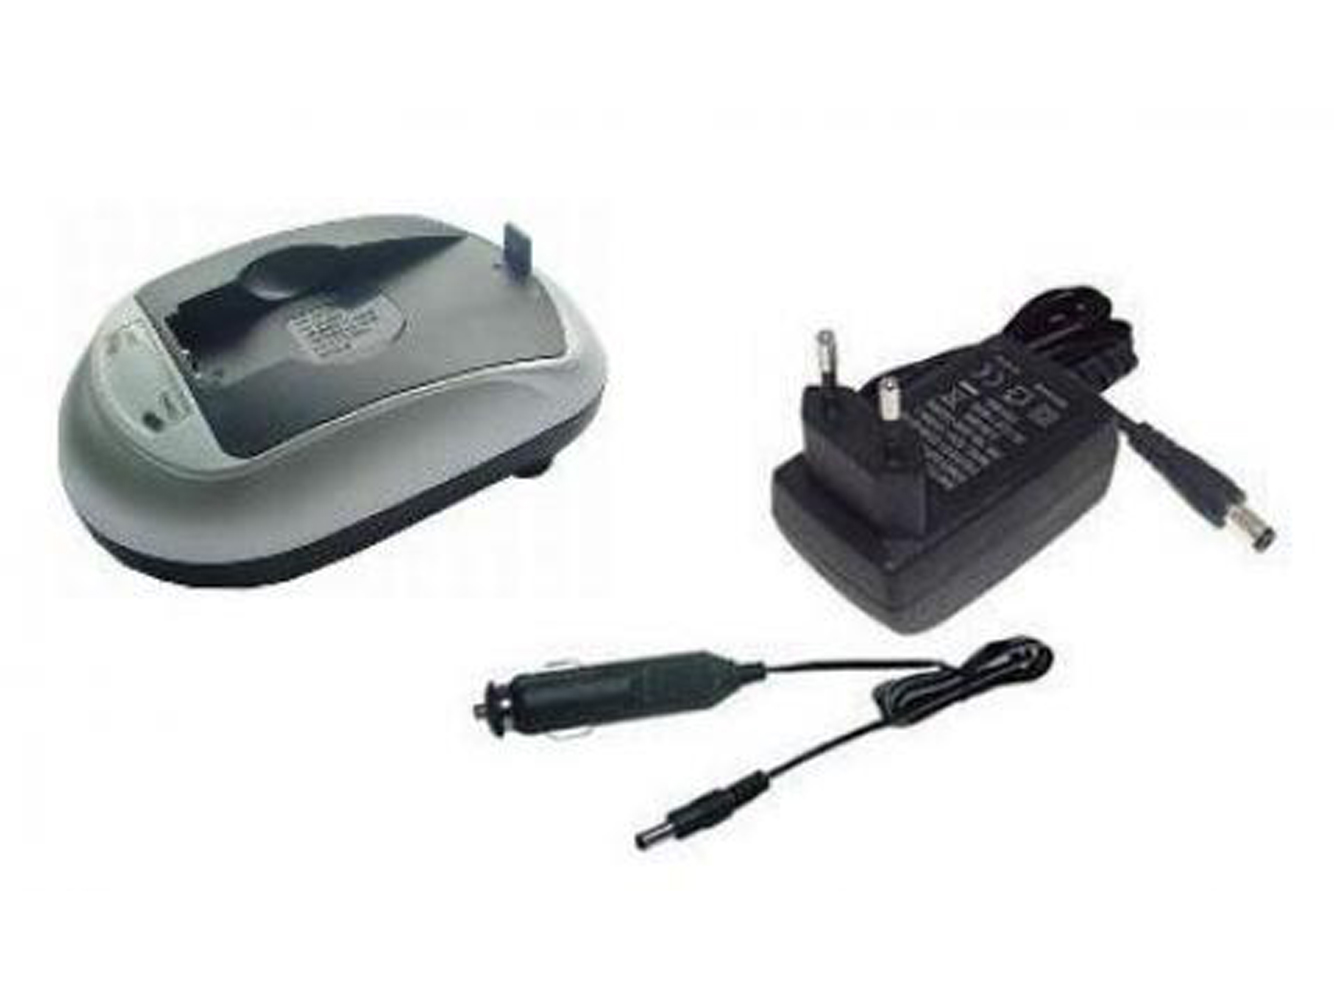 Battery Charger for YASHICA BP-800S, BP-900S, BP-1000S, BC-1